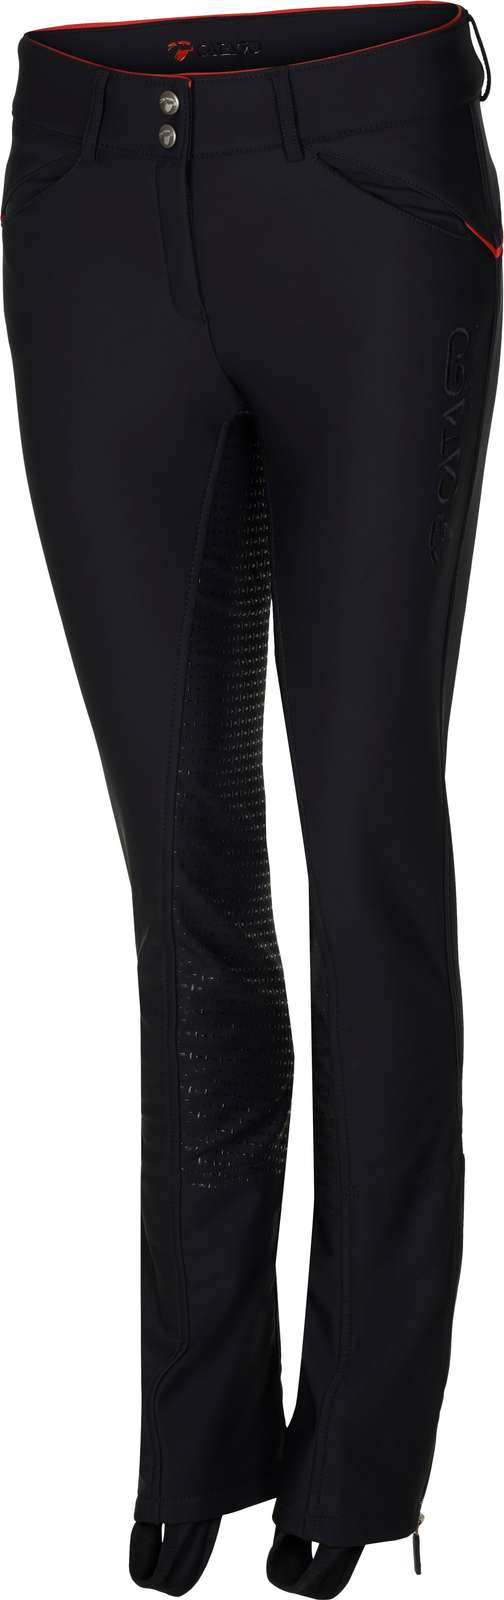 Image of   Catago jodhpurs ridebukser sort